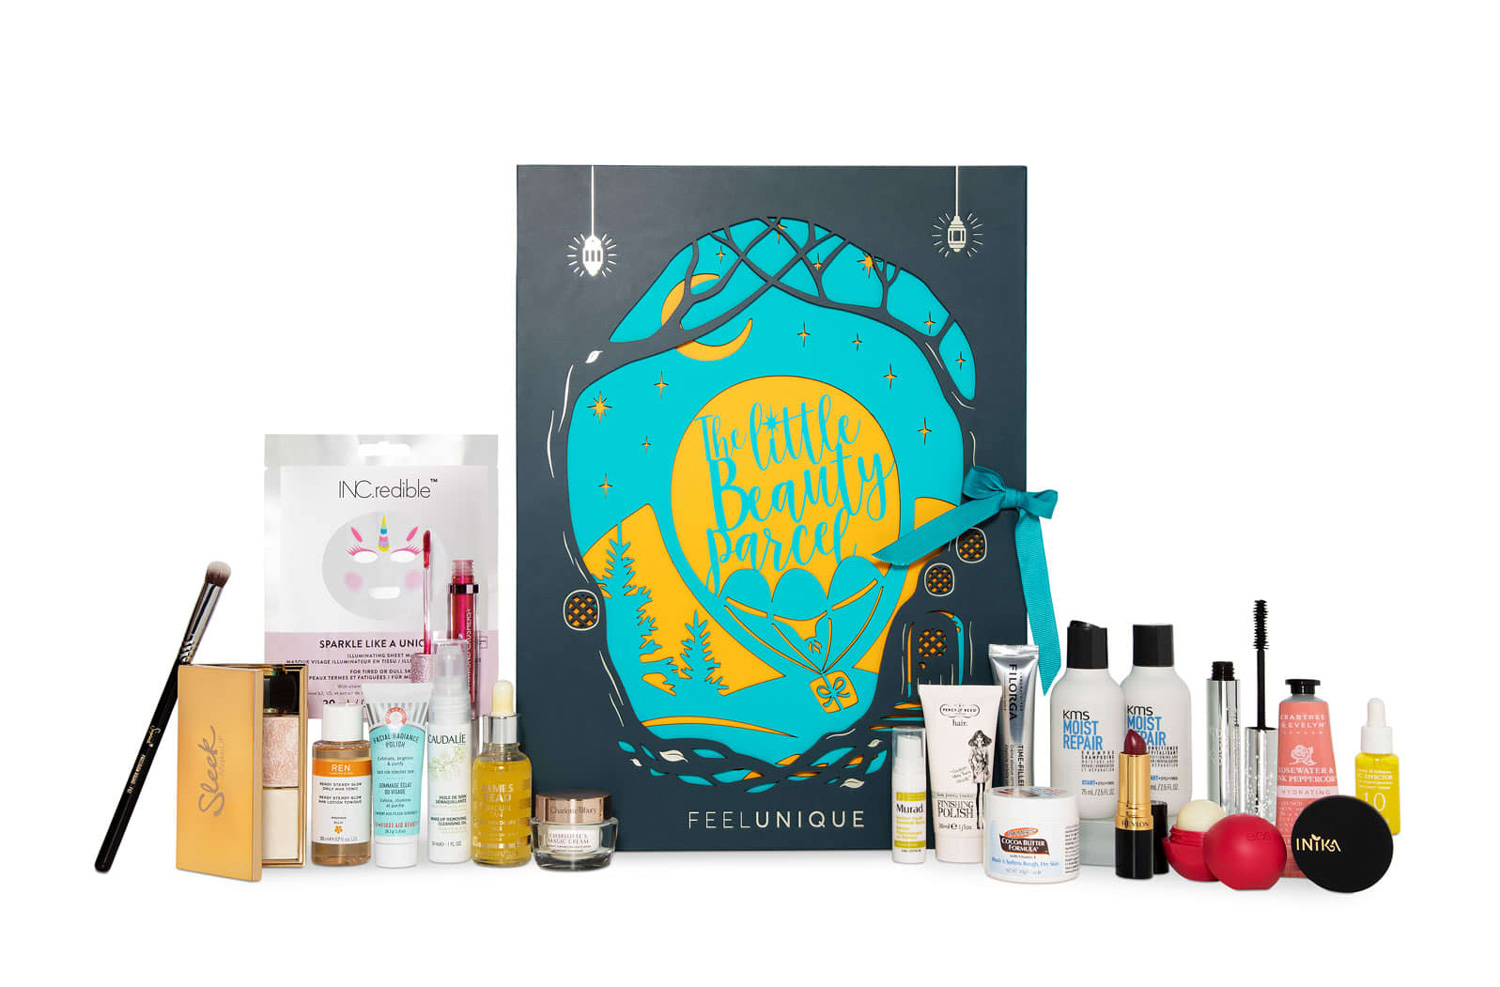 feelunique-advent-calendar-2018-beautyisunique